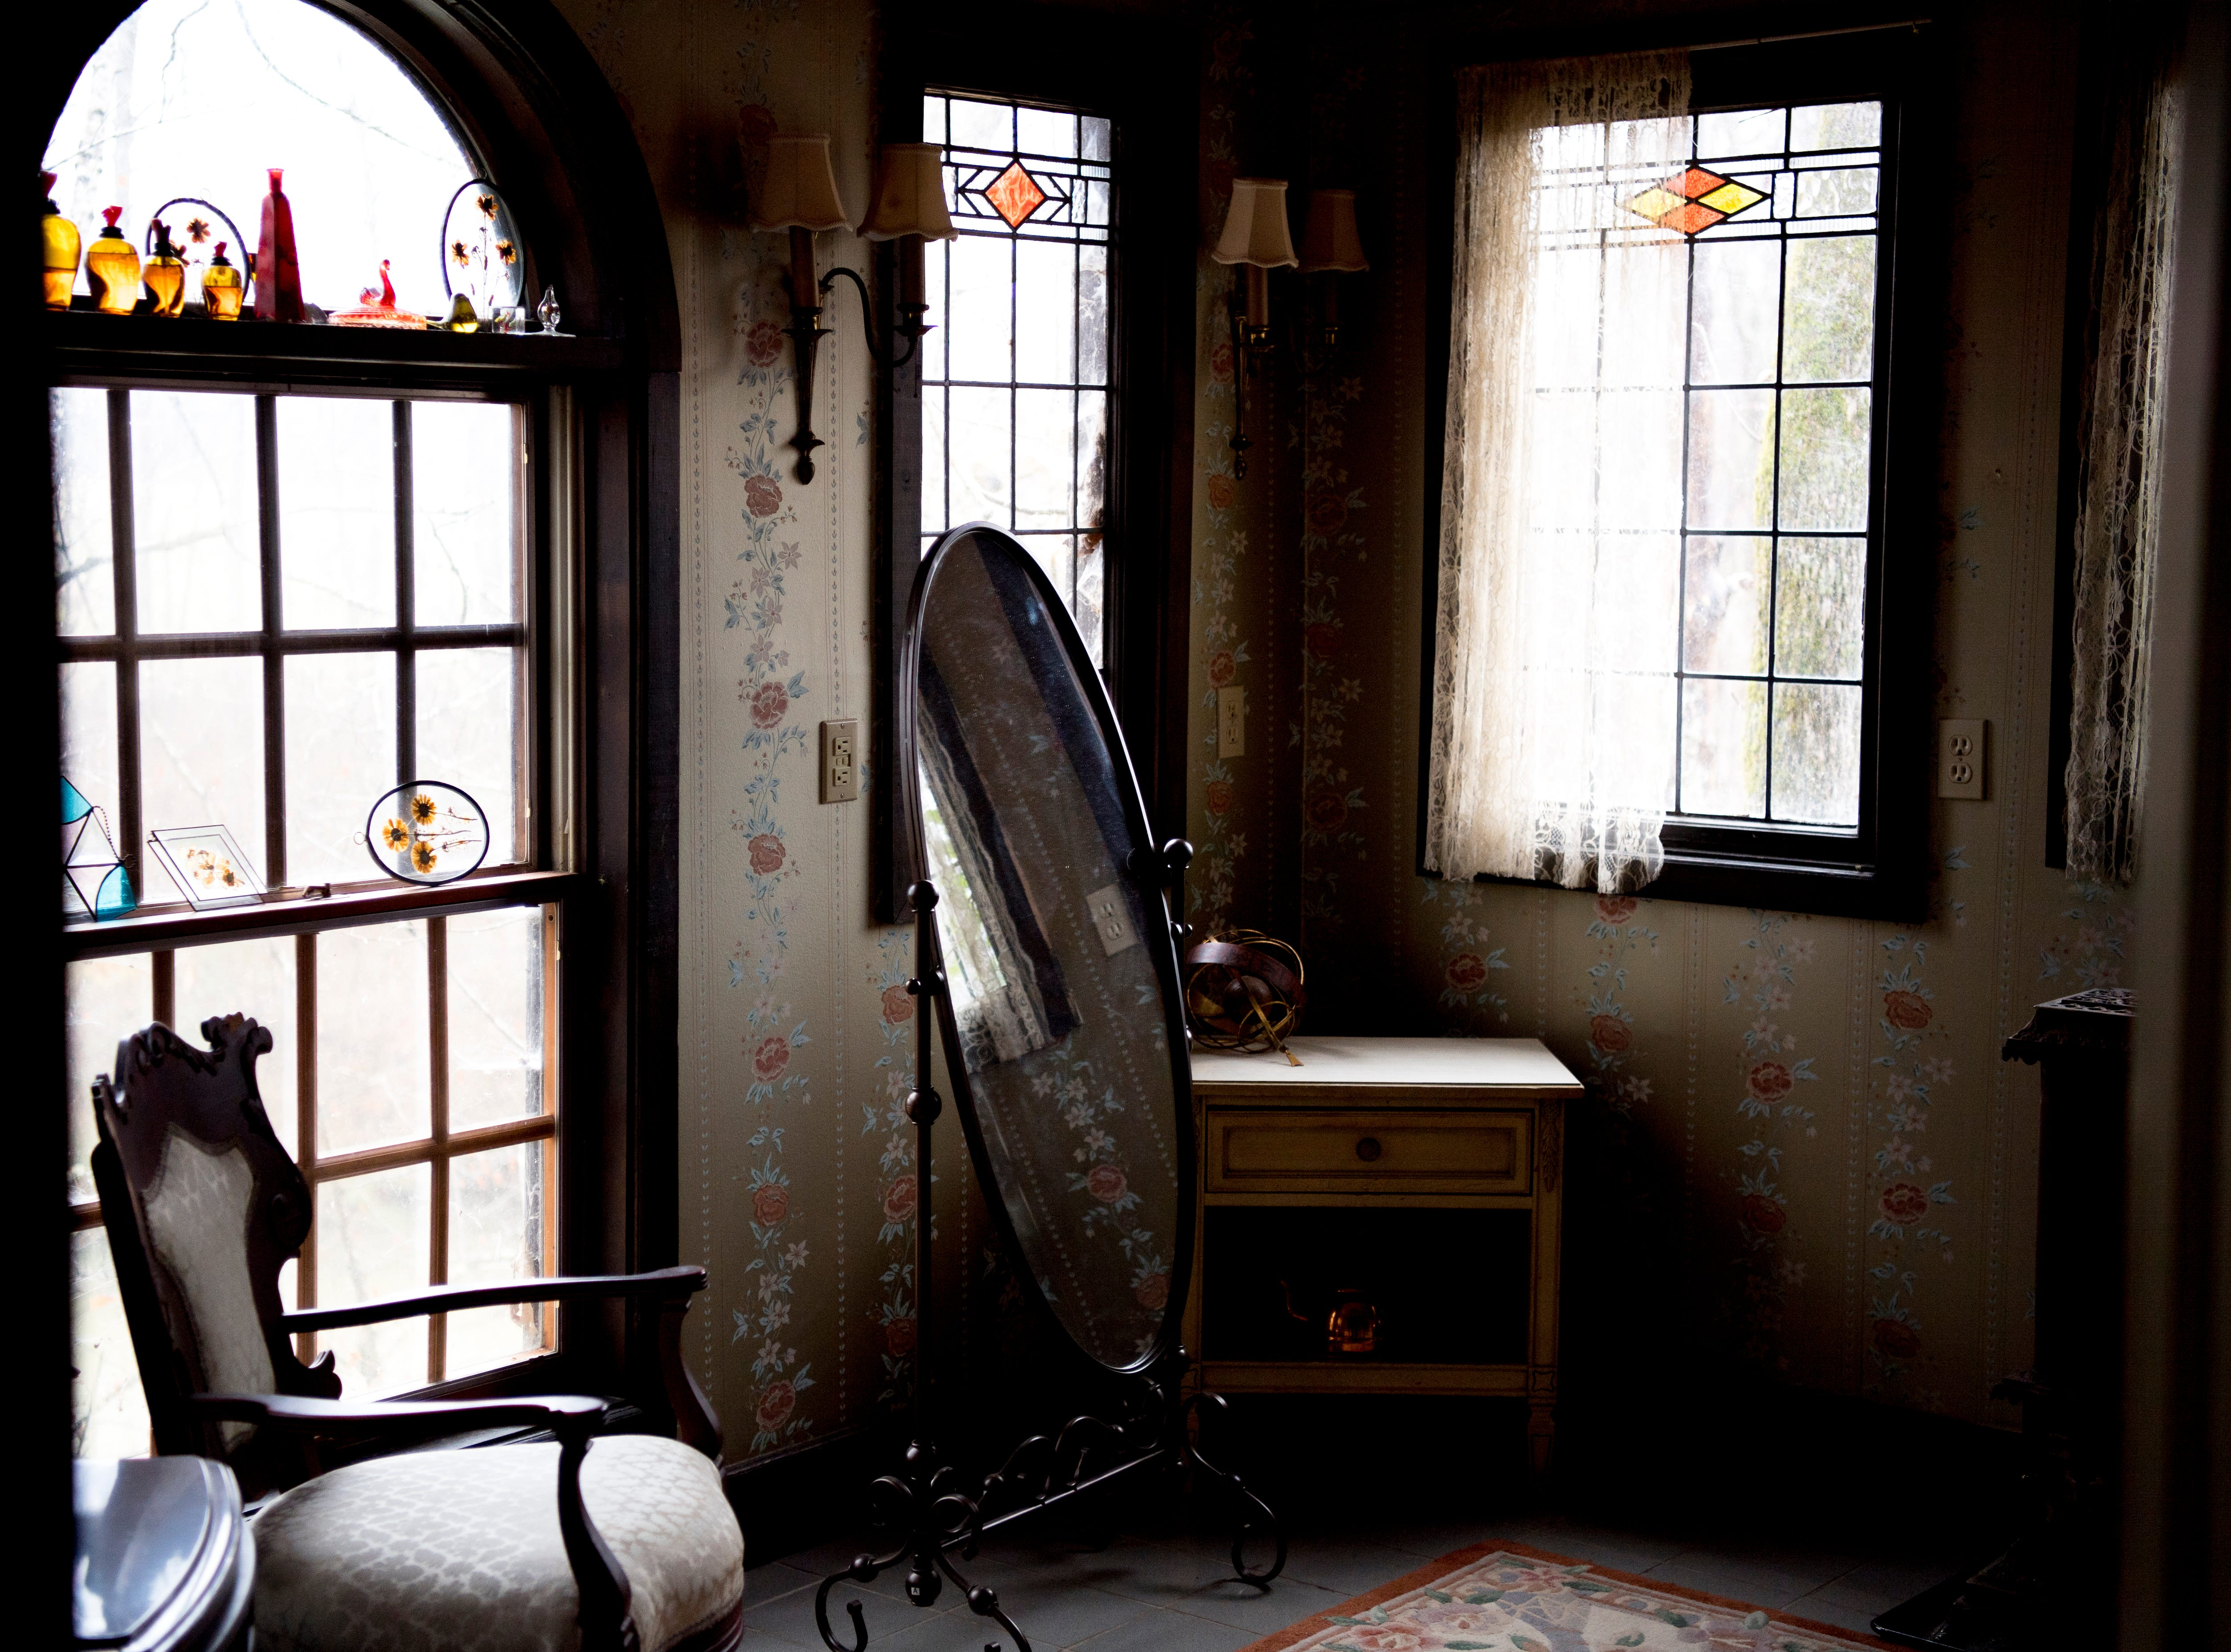 A dressing room inside Williamswood Castle in South Knoxville, Tennessee on Thursday, January 17, 2019. The home, modeled after a medieval castle, was built by Julia Tucker in 1991 and took 6 years to complete. Many of the items in the home were sourced from around the Knoxville area.